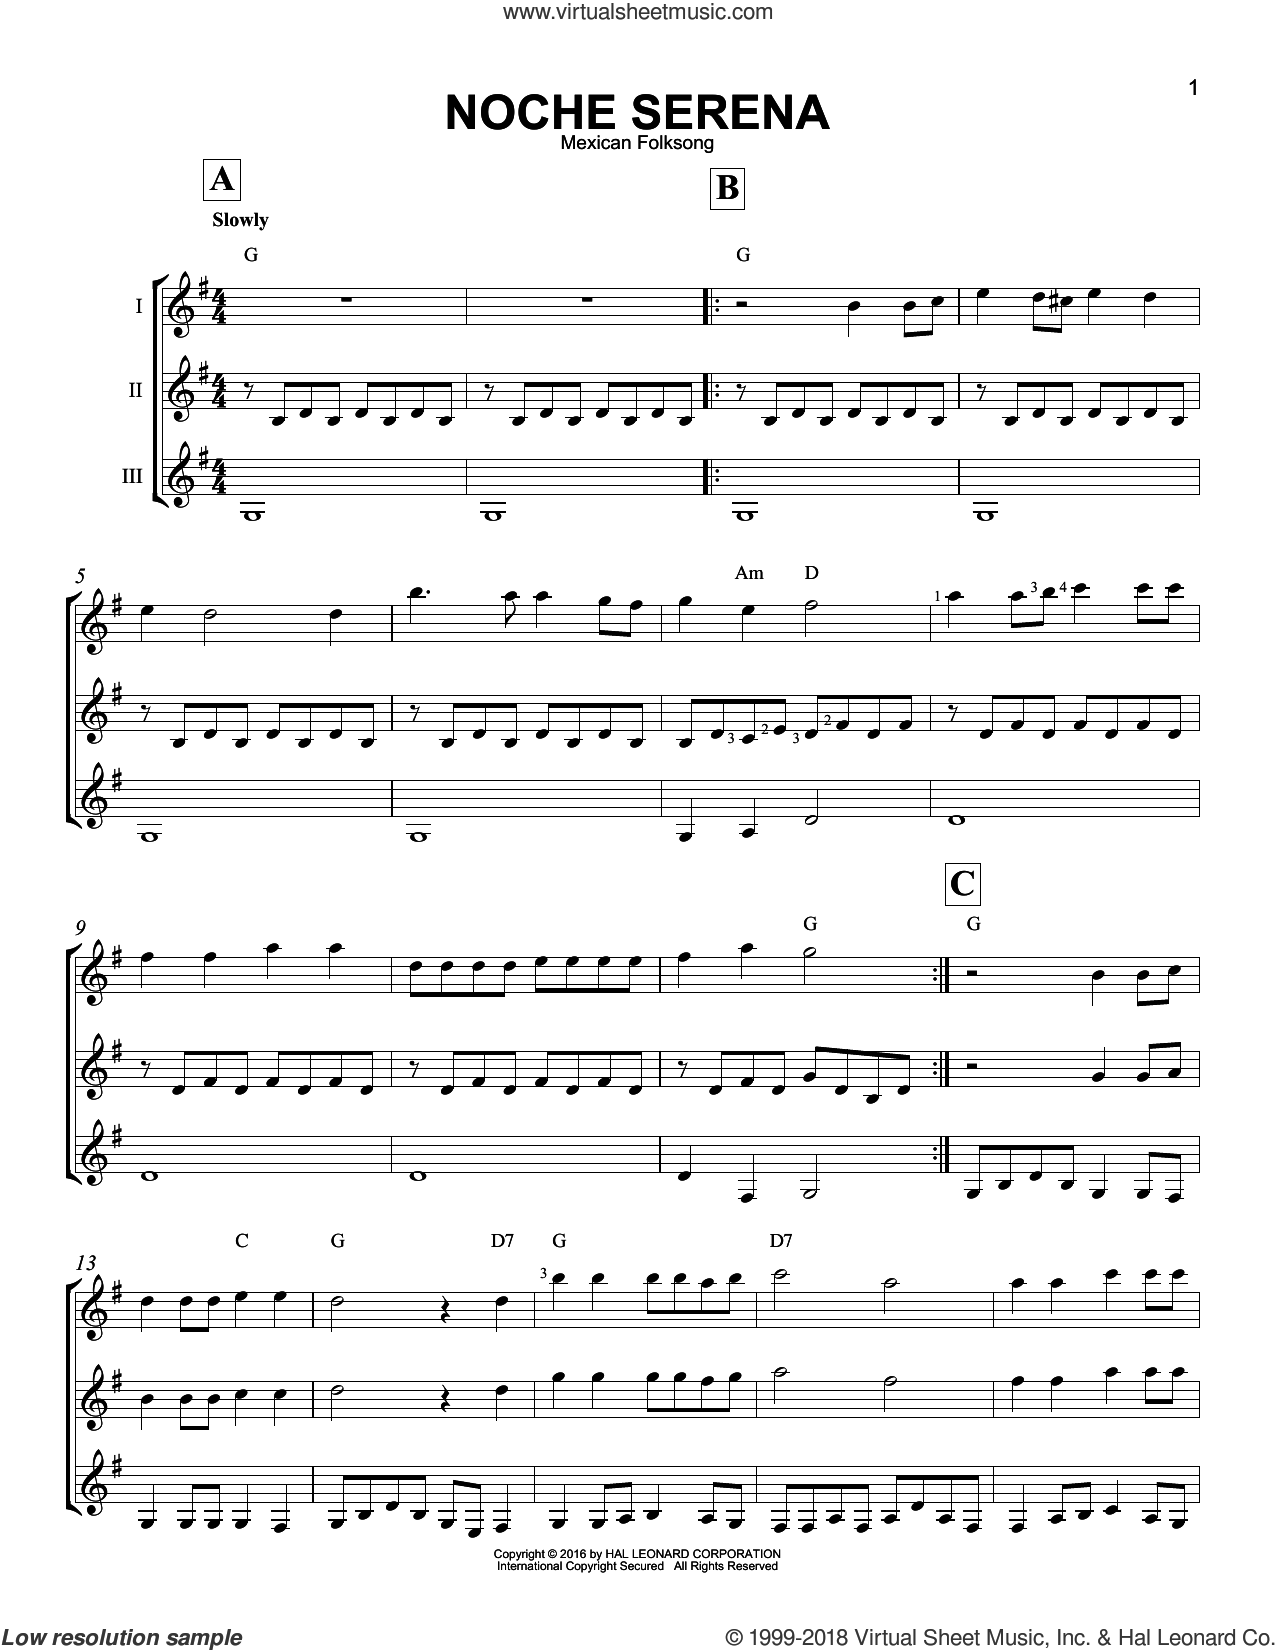 Noche Serena sheet music for guitar ensemble by Mexican Folksong, intermediate skill level